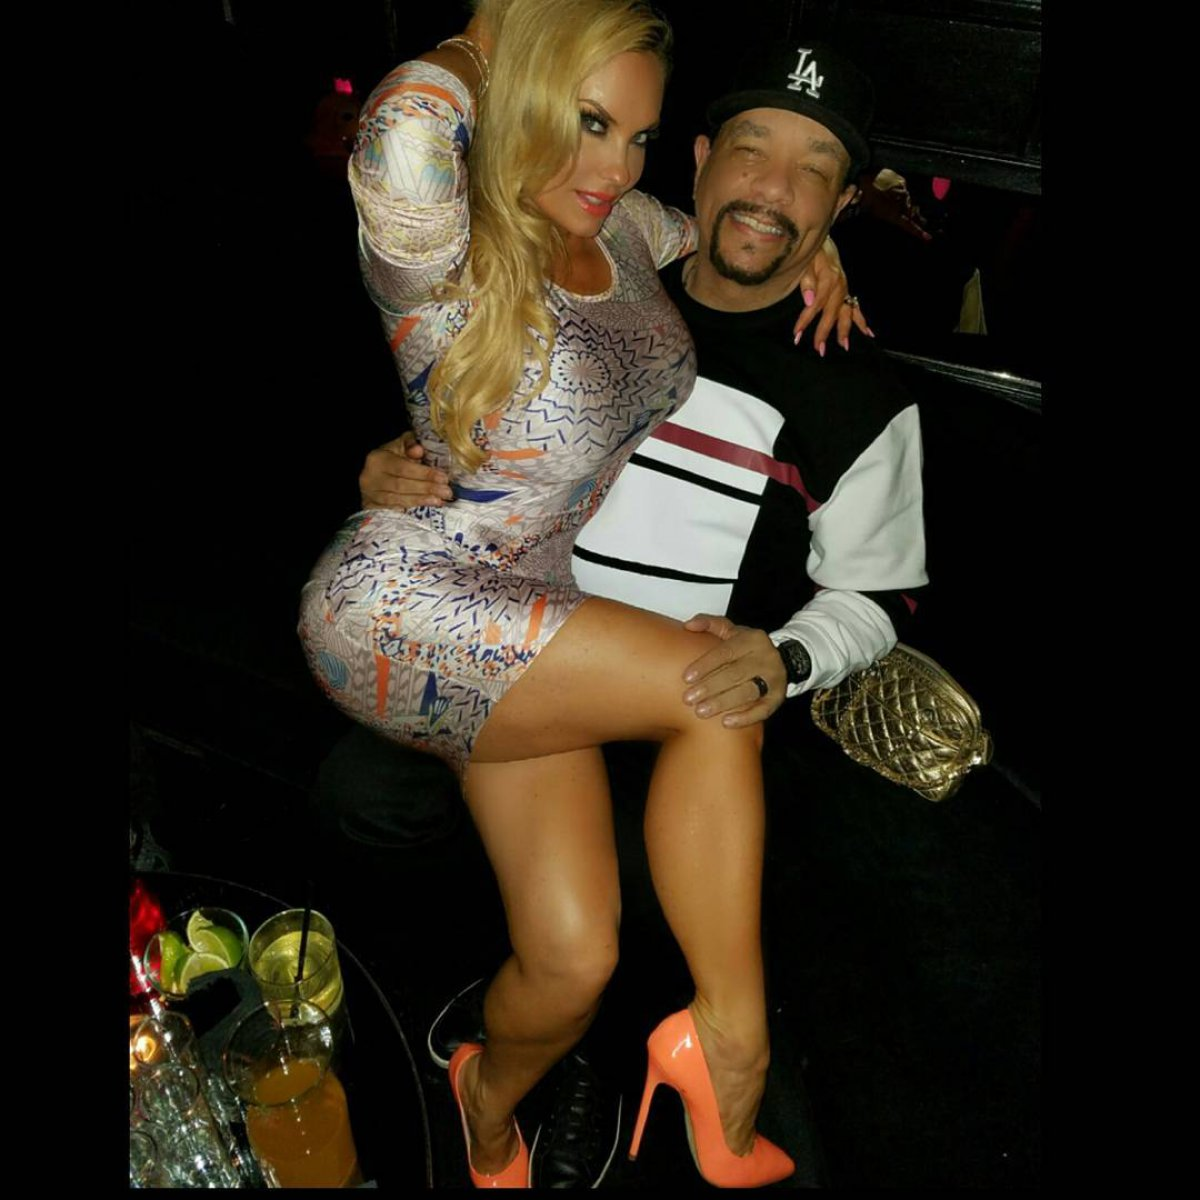 Coco austin sexy nudes (24 photo), Leaked Celebrites images